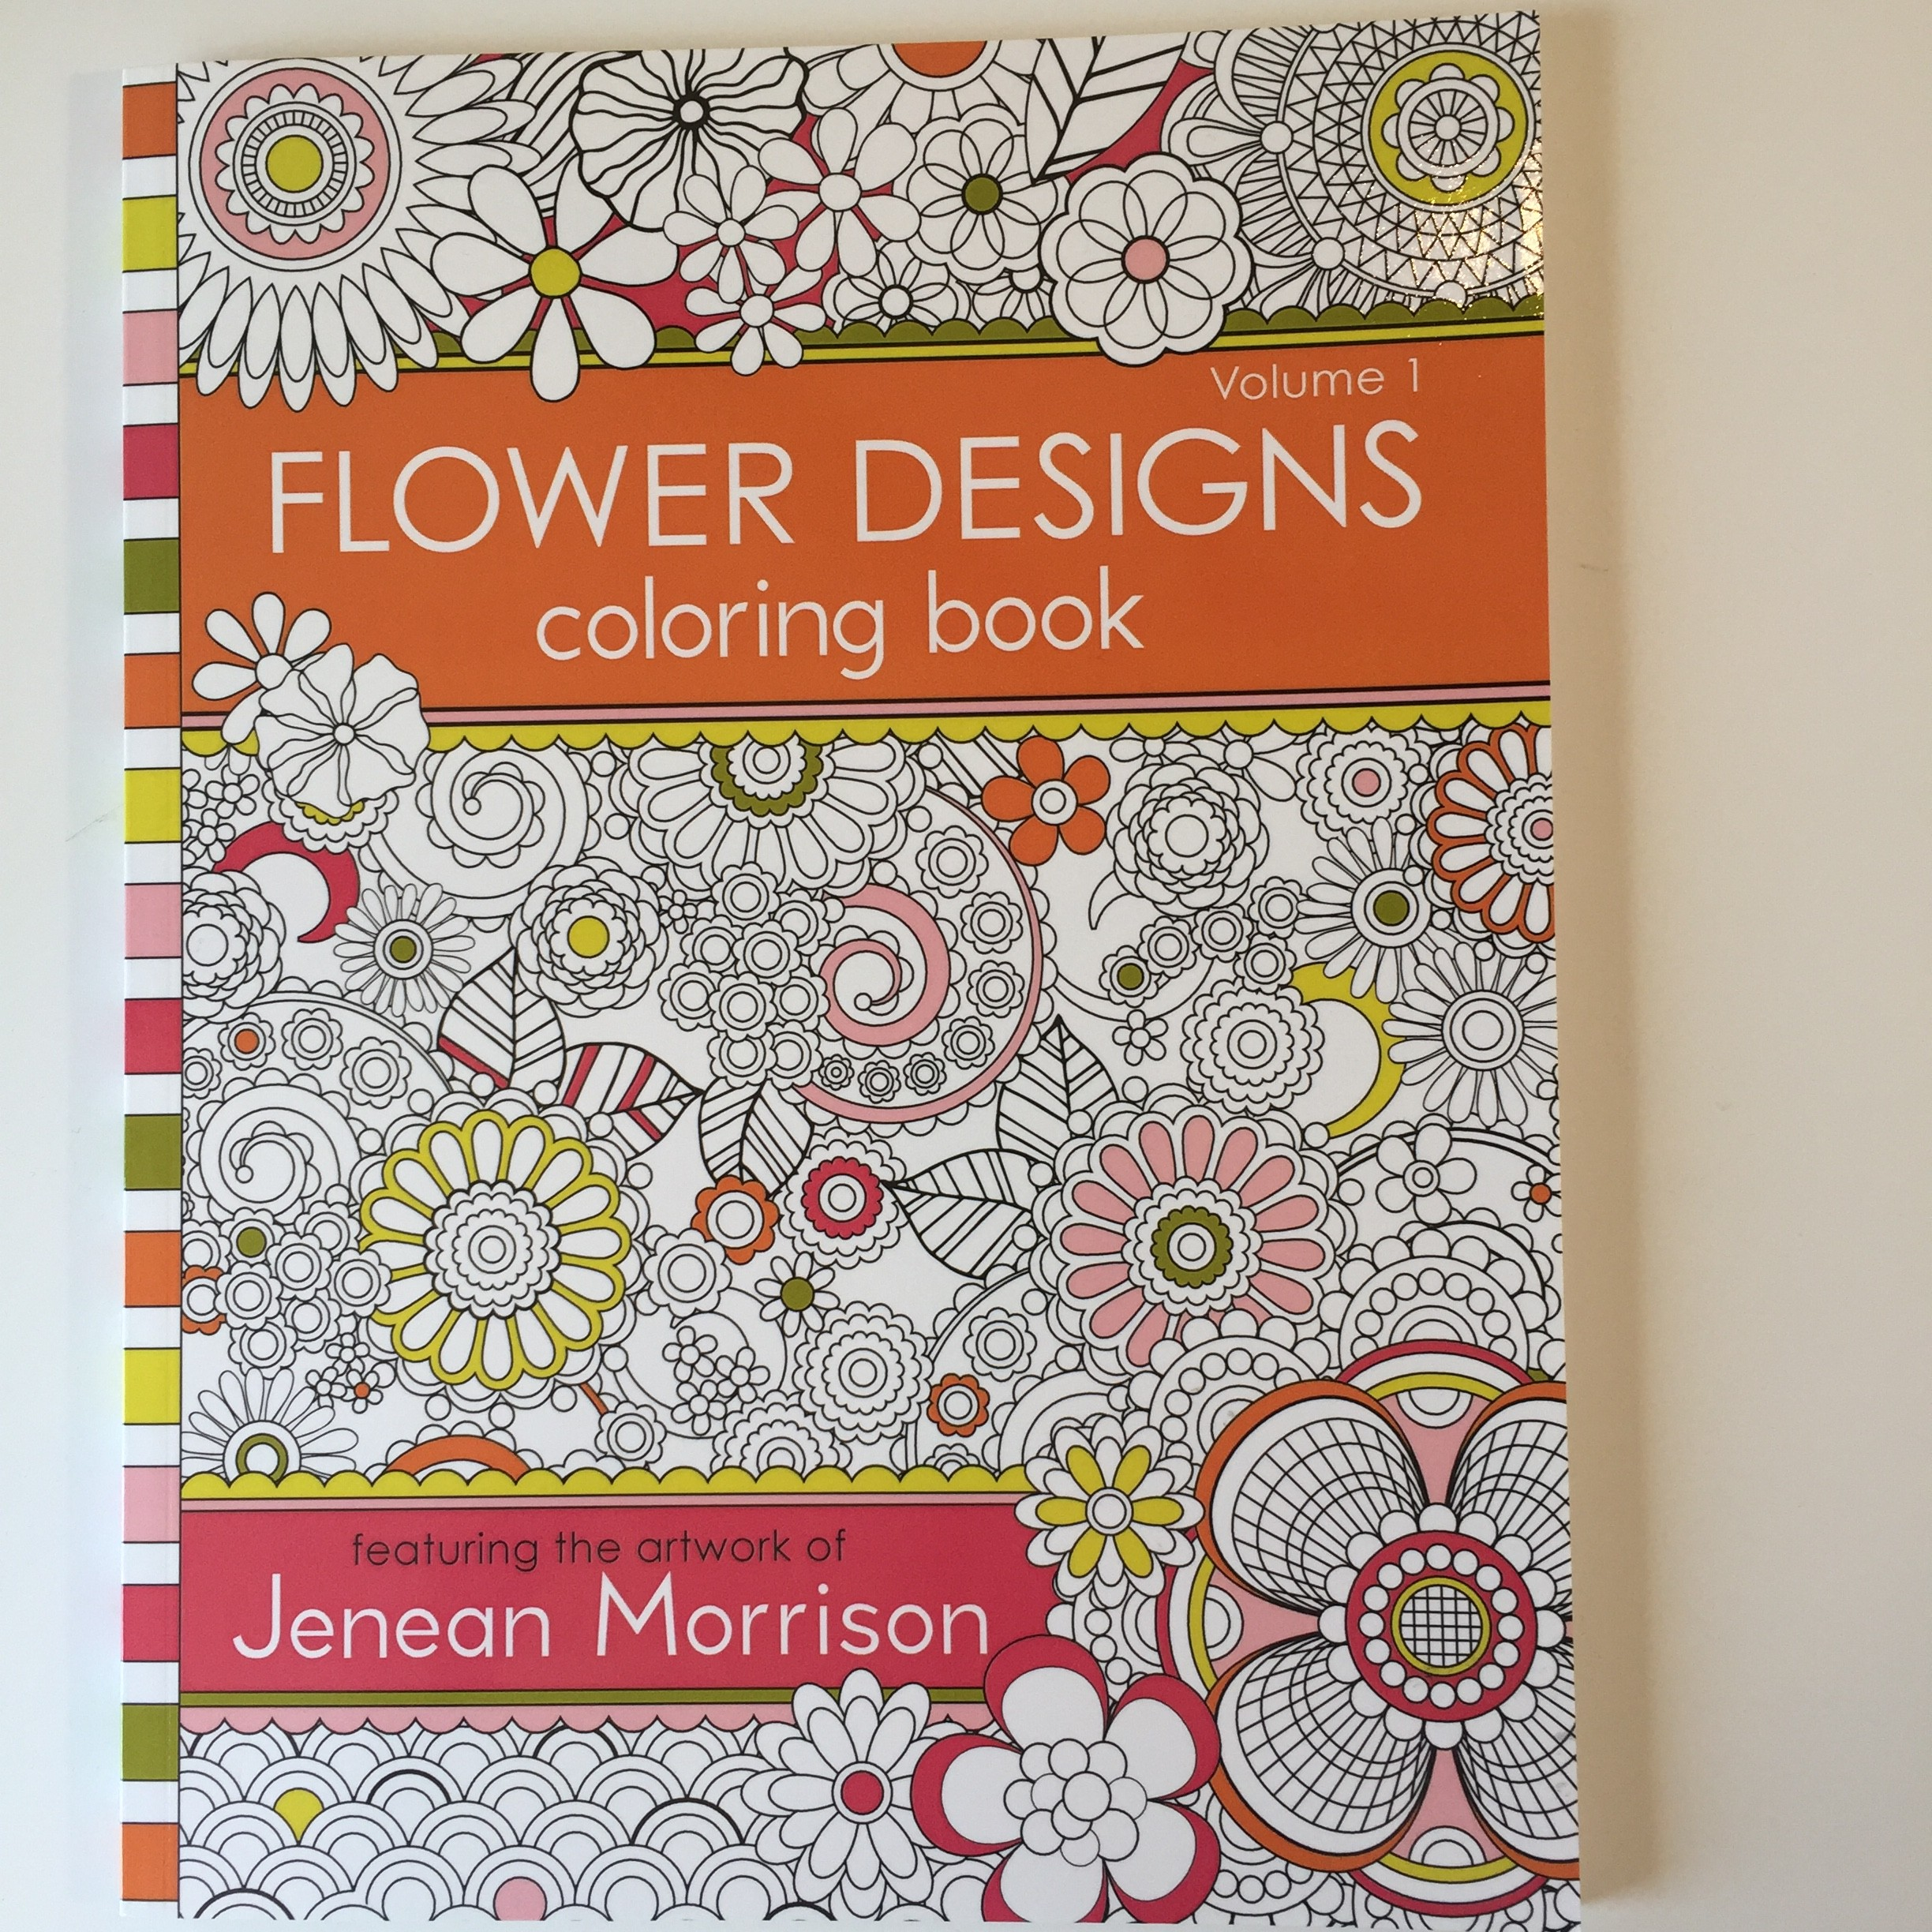 Flower designs coloring book - Img_7328